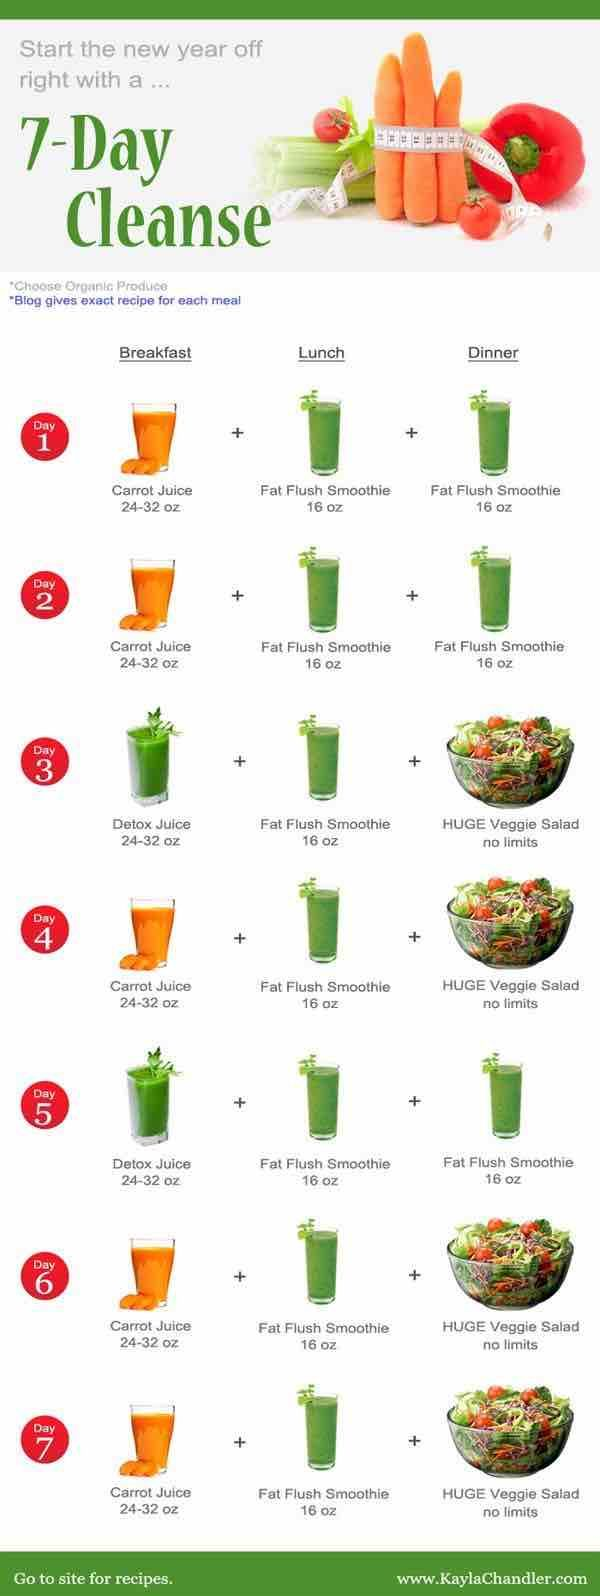 Look for juicing recipes to detox your body? Try these fresh and simple juice and smoothie recipes made from whole fruits and vegetables! 1. 10 Benefits of adding juices to your diet; Via www.stylecraze.com 2. Start a healthier lifestyle with this 7-day cleansing recipe; via www.kaylachandler.com 3. 4 Day juice cleansing recipe to detox your body; via www.greenthickies.com 4. Juicing recipes for weight […]